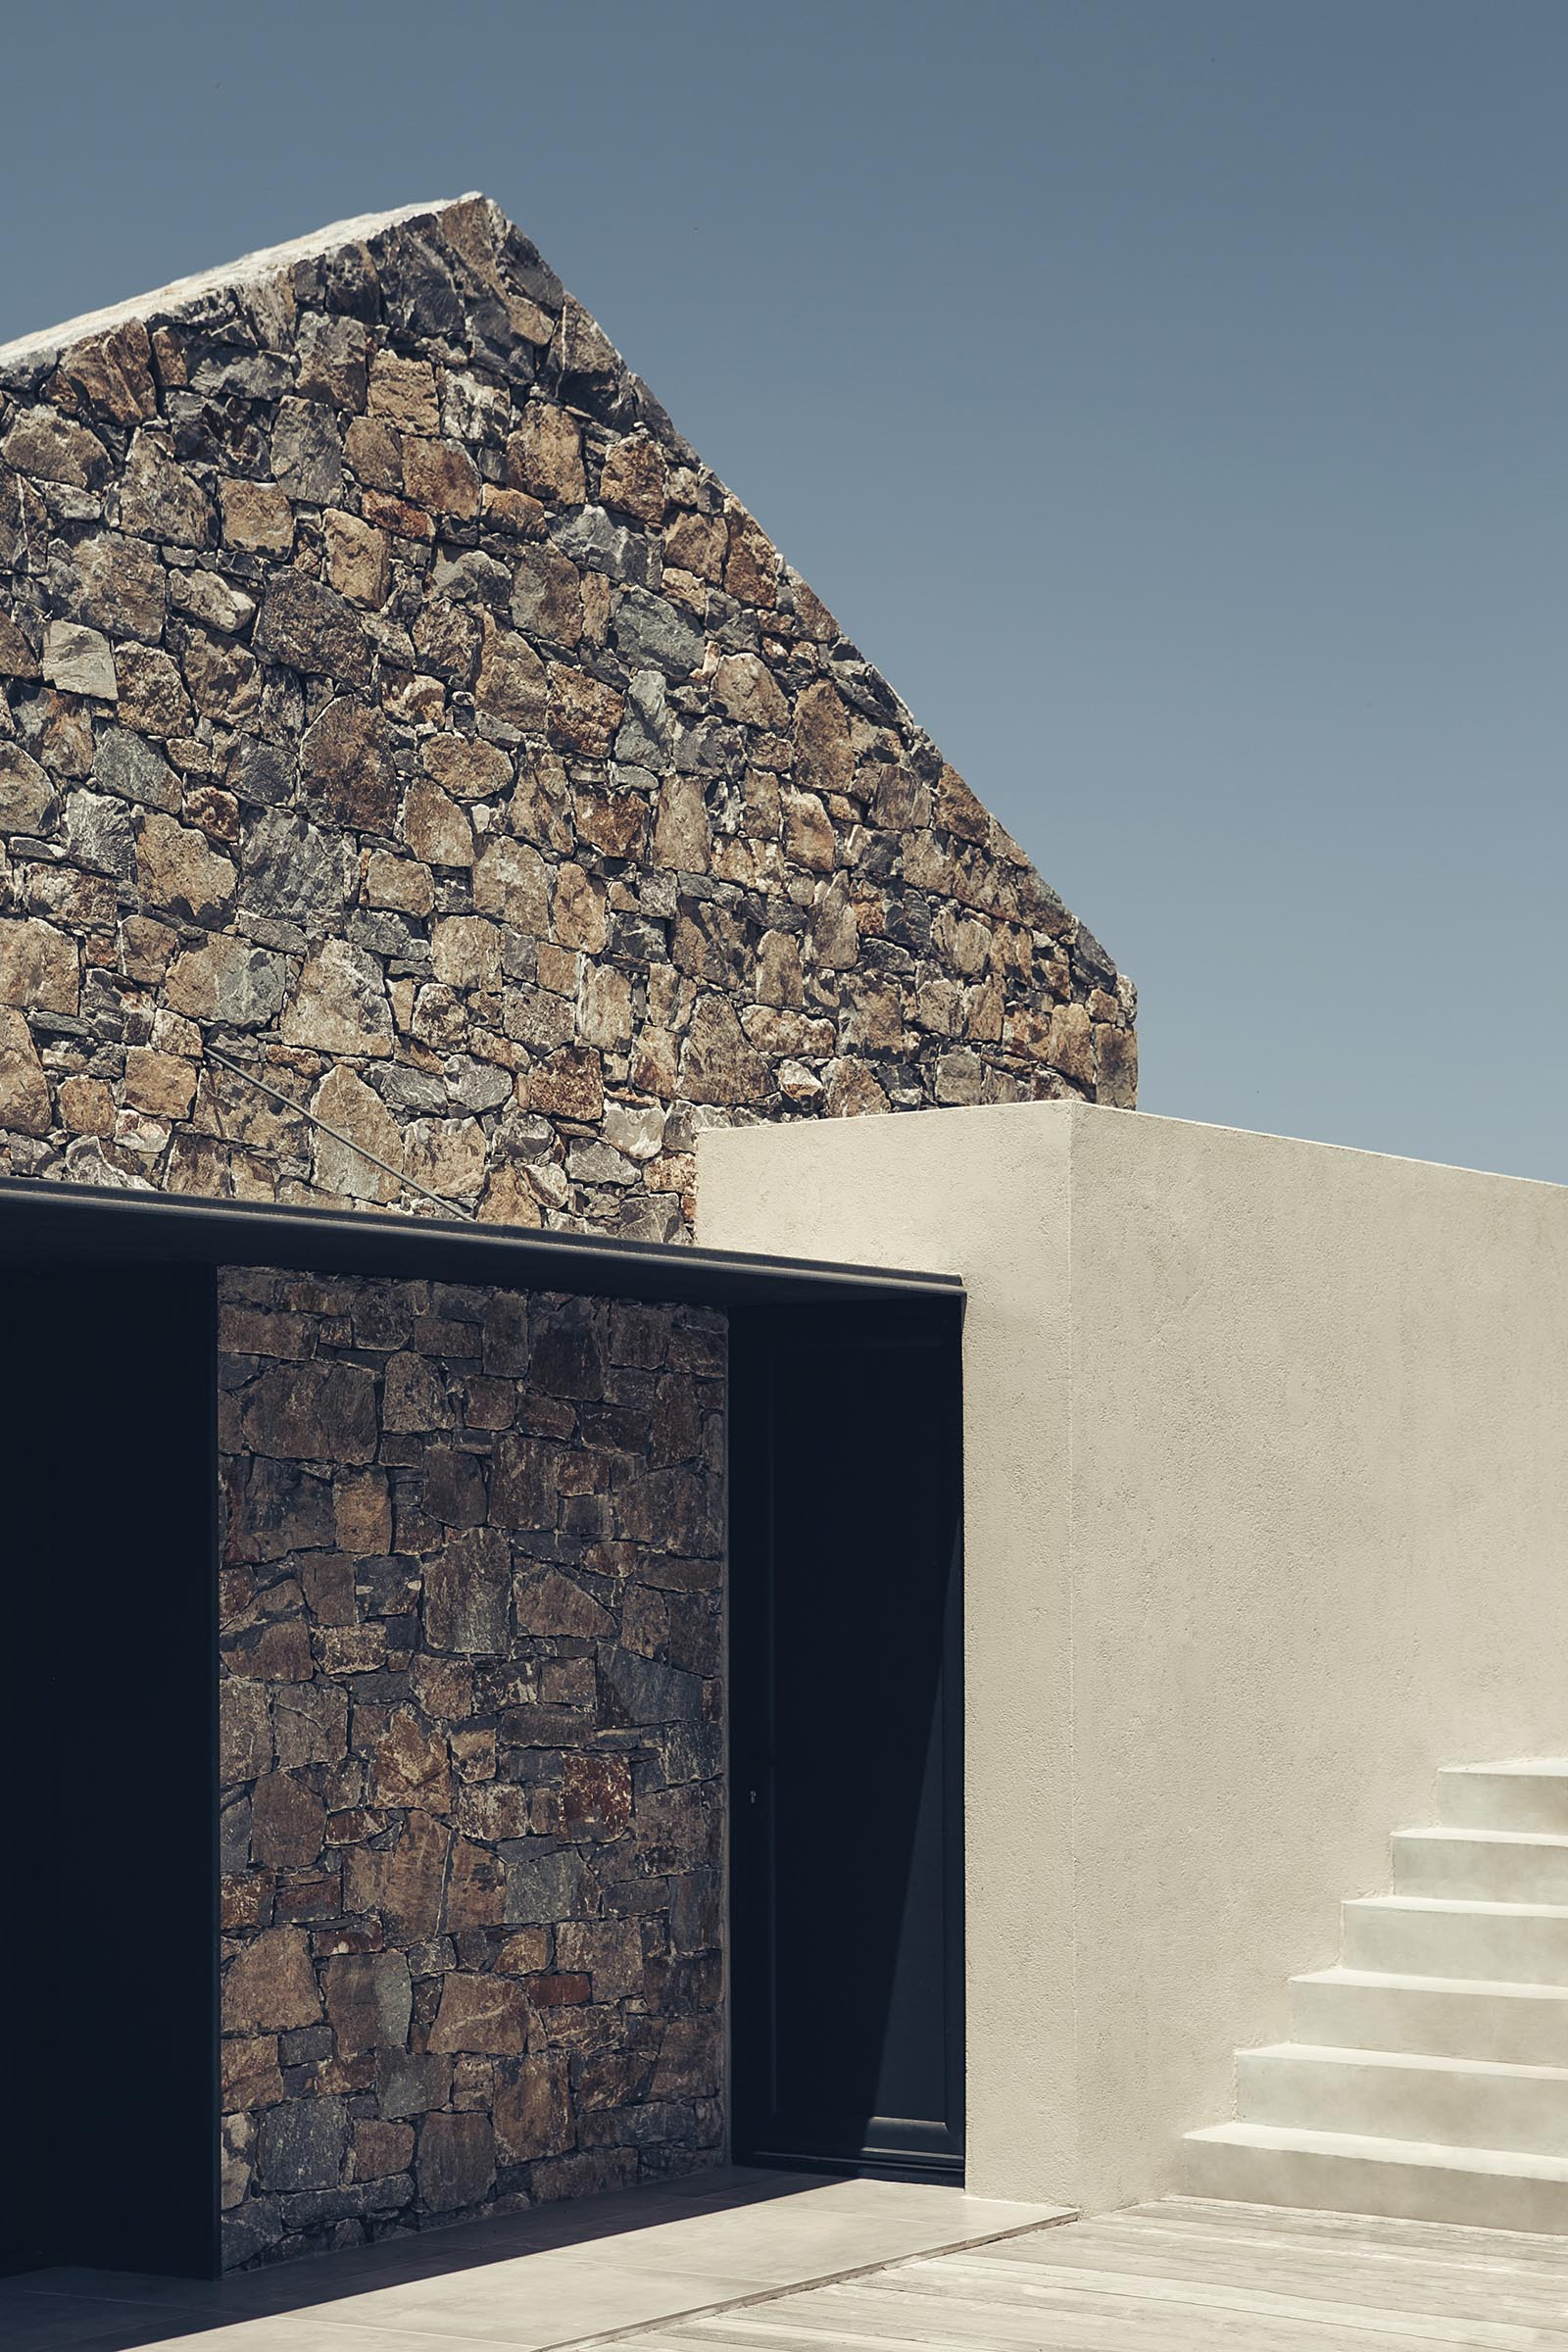 Black metal accents contrast the stonework of this contemporary house.